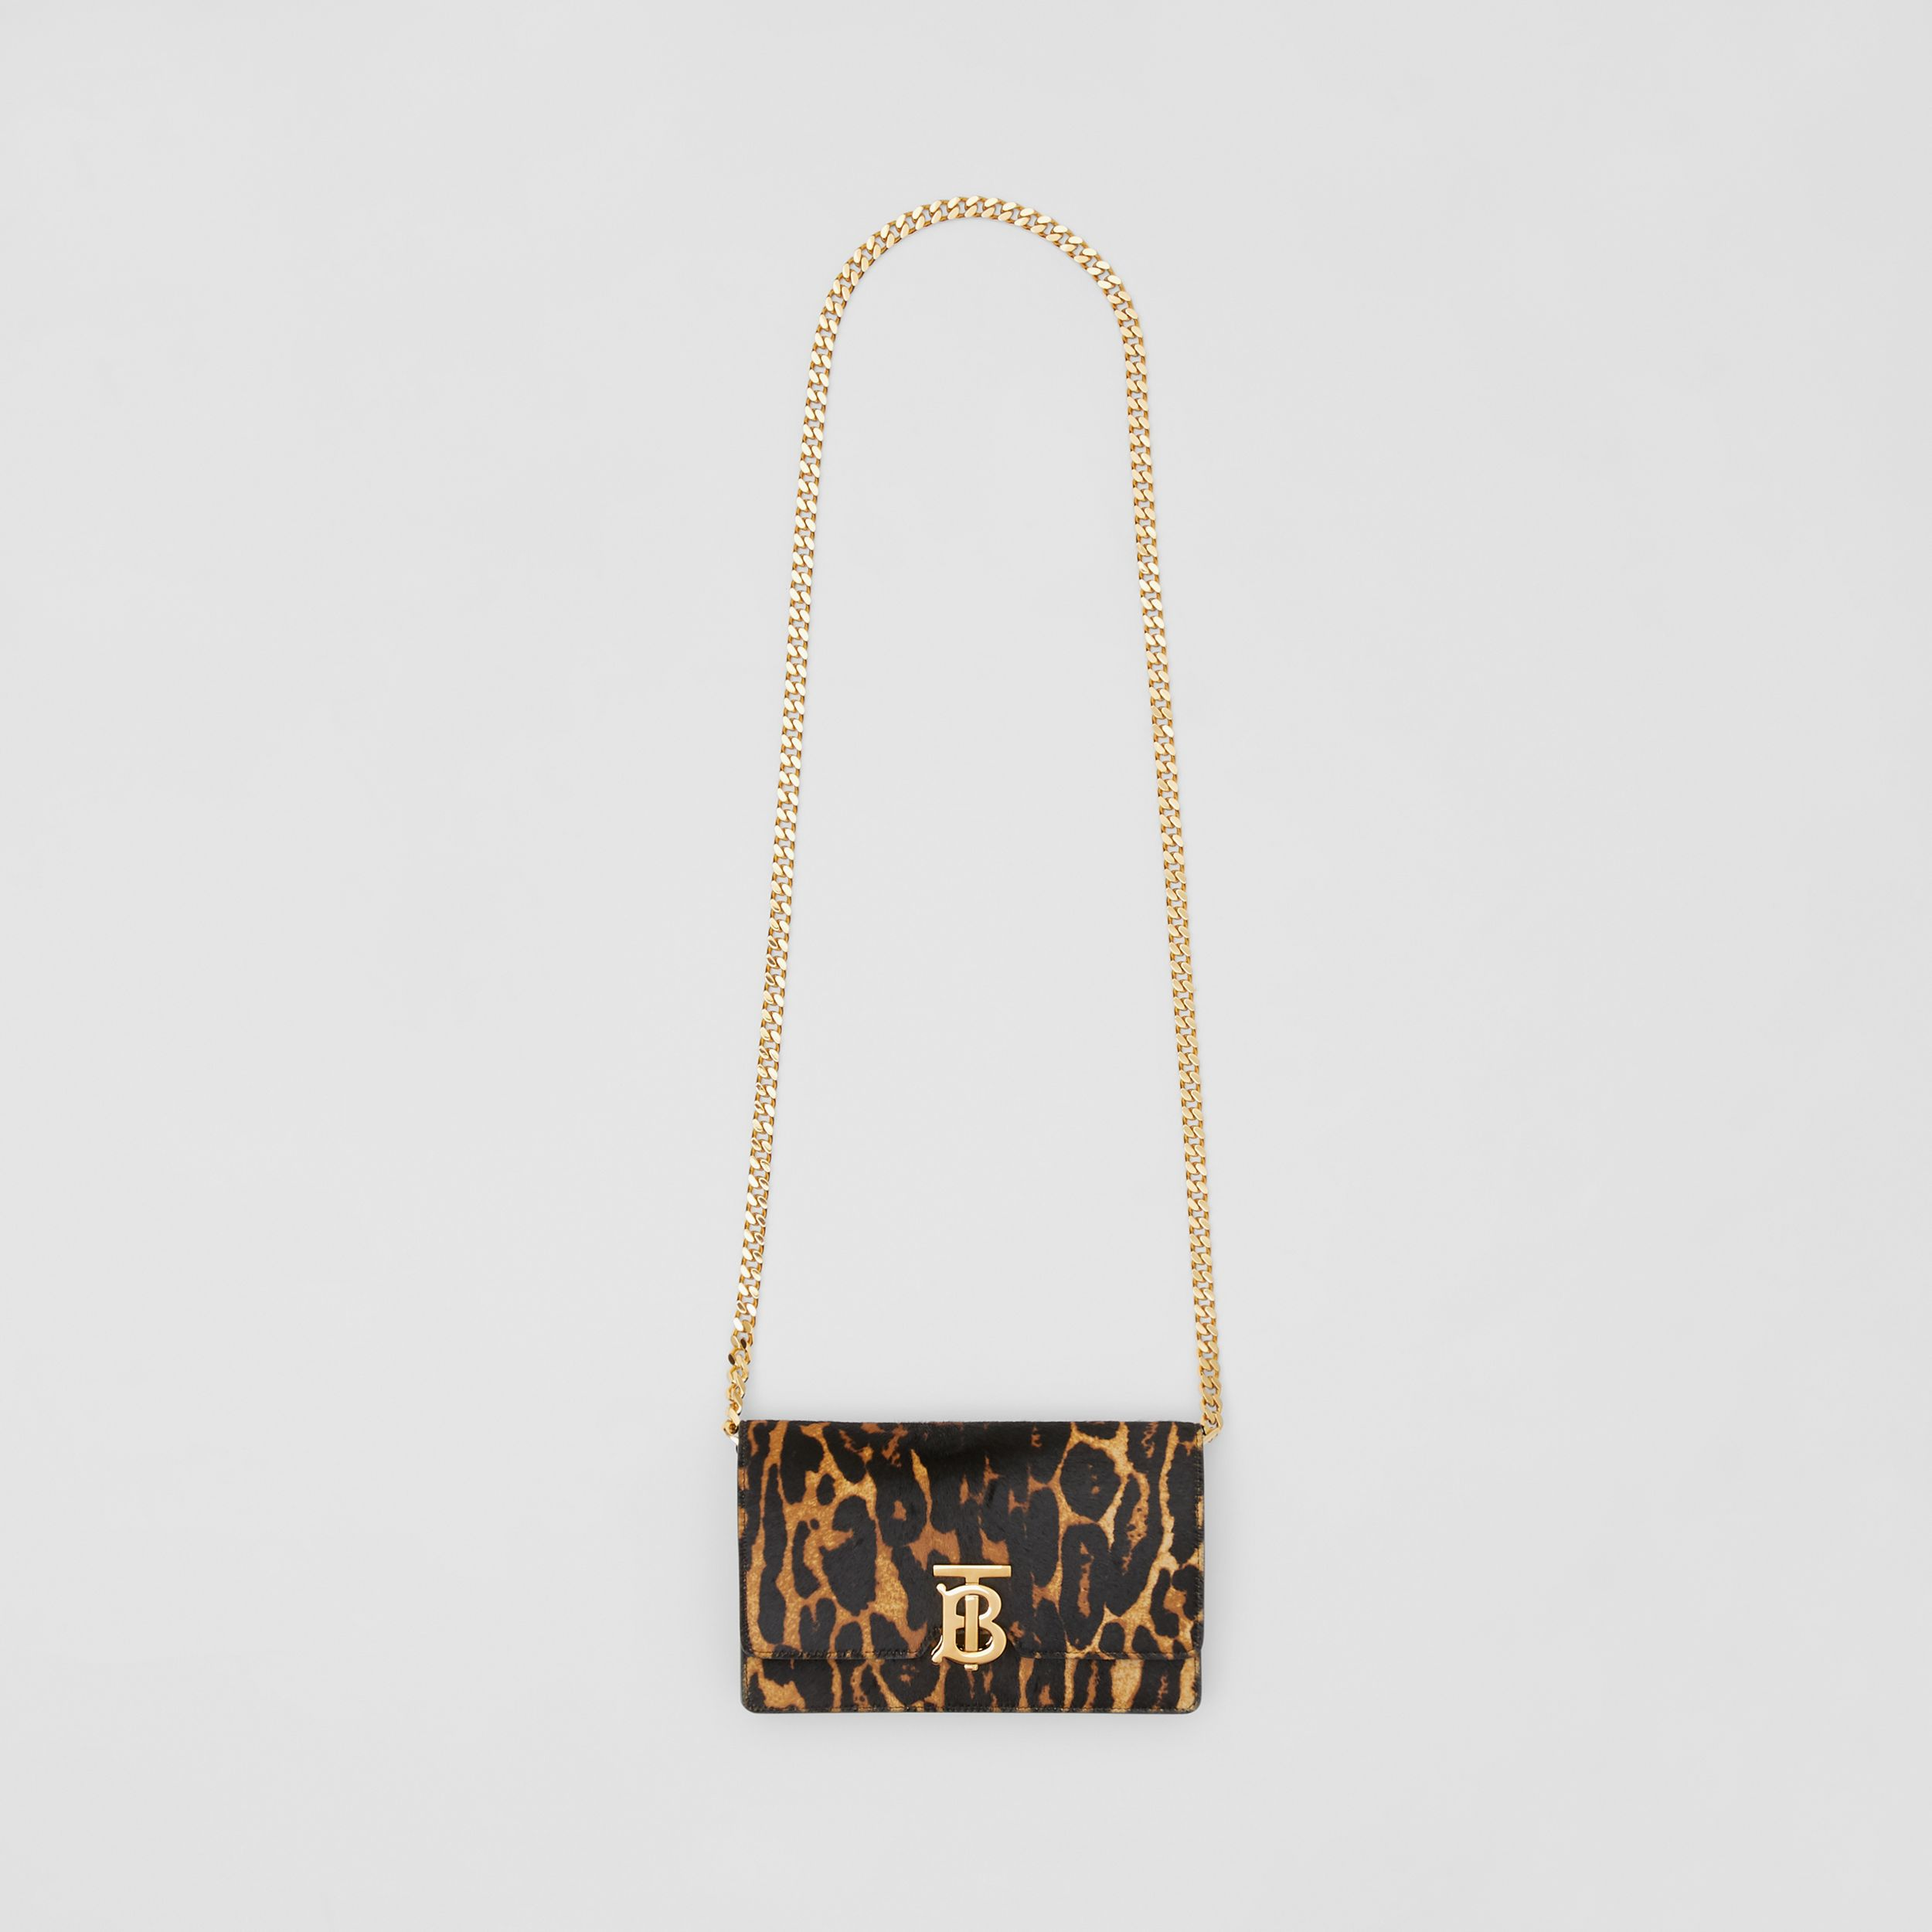 Small Leopard Print Calf Hair Shoulder Bag in Dark Mustard - Women | Burberry United States - 4